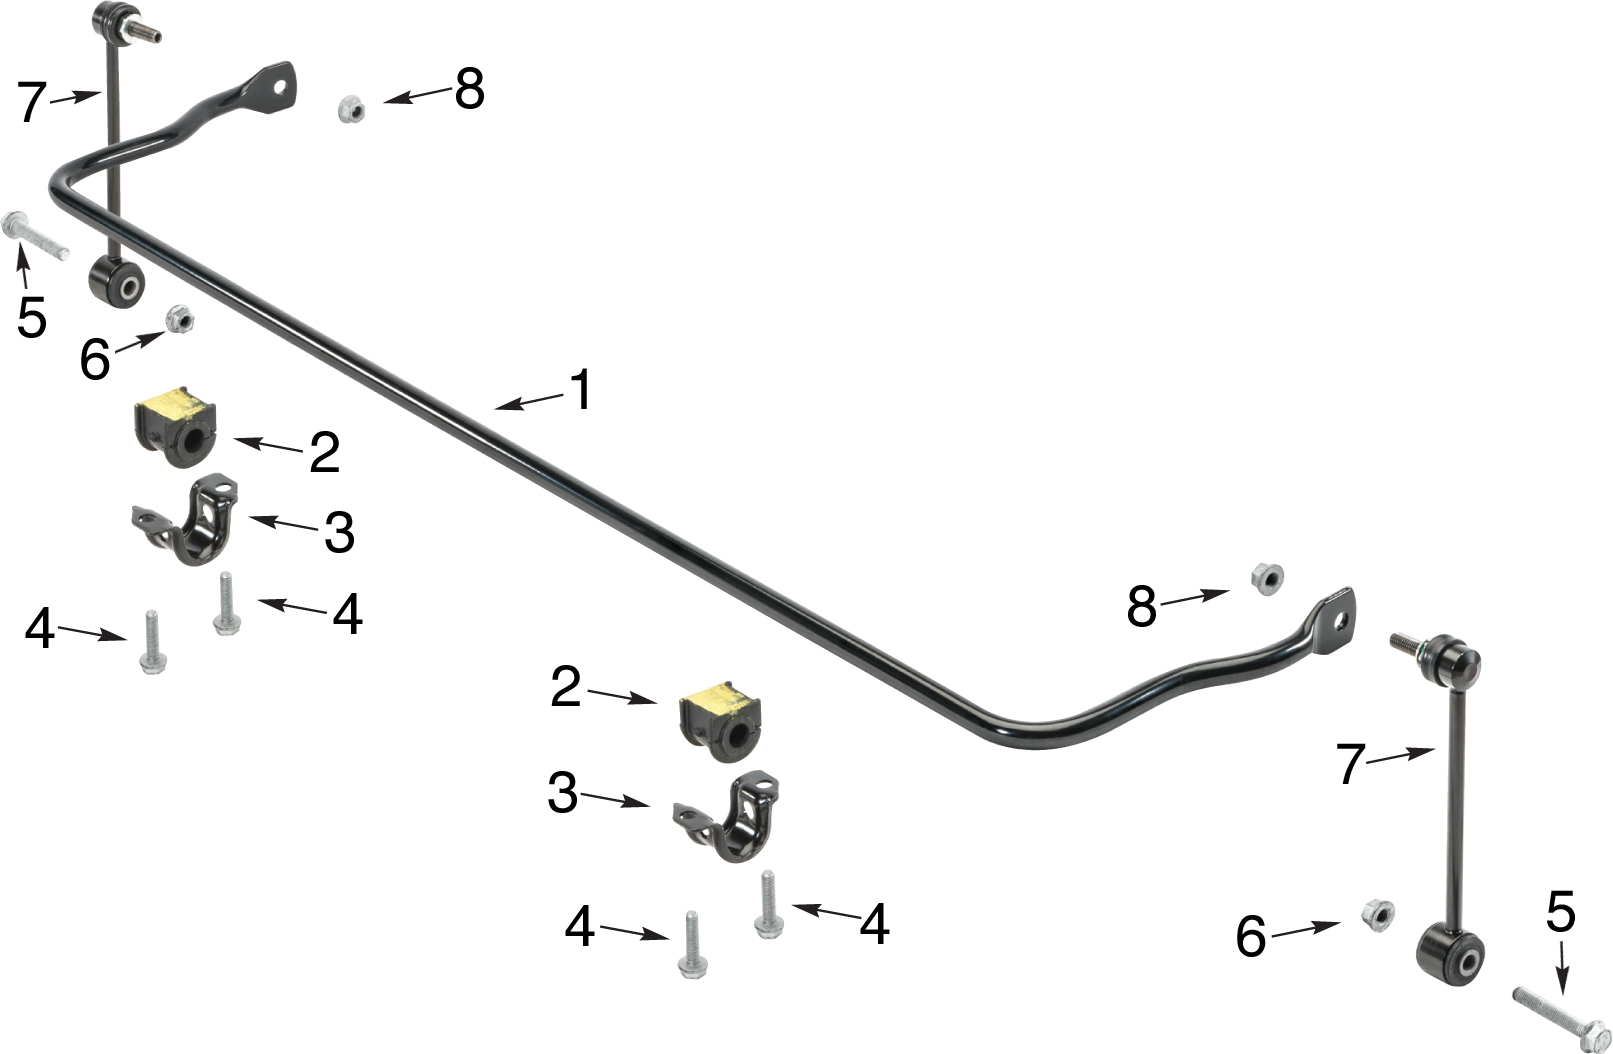 jeep jk front end diagram 3 way speaker crossover wiring wrangler rear stabilizer bar parts quadratec